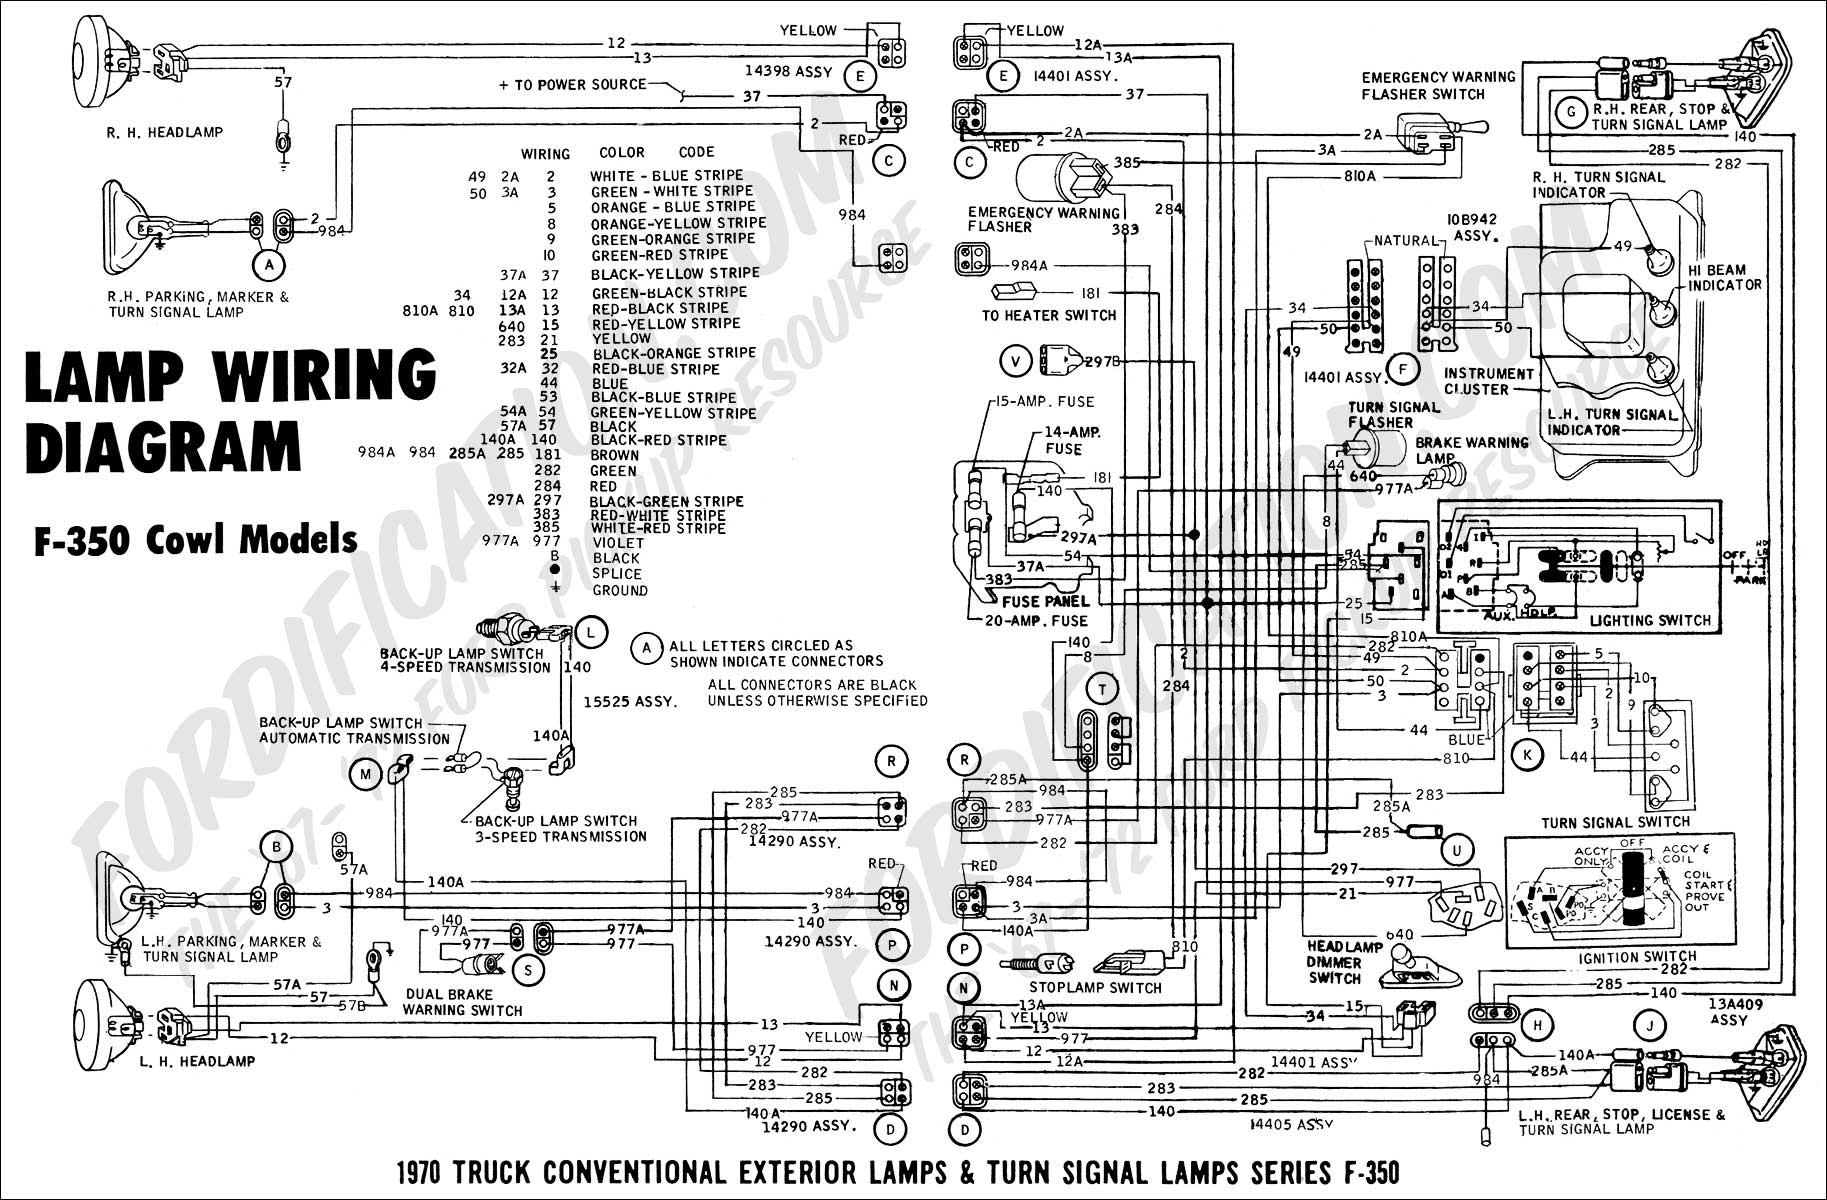 73 Nova Wiring Diagram 350 26 Images For 72 Chevy 70f350cowl Lights01resize6652c437 1970 Readingrat